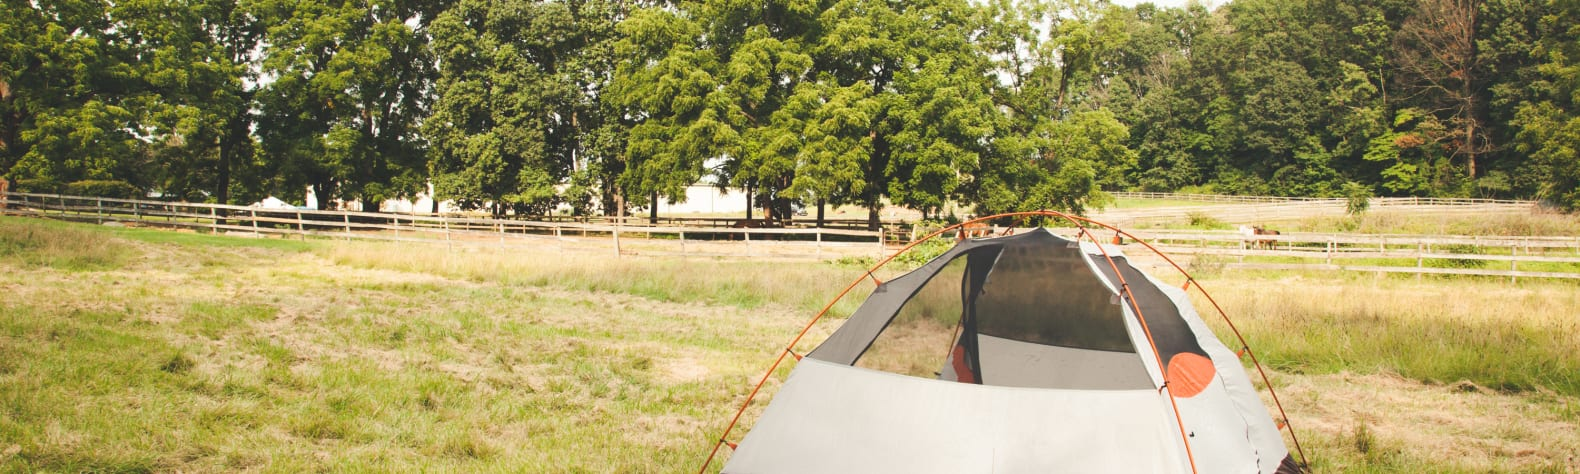 Stone Field Stables and Camping